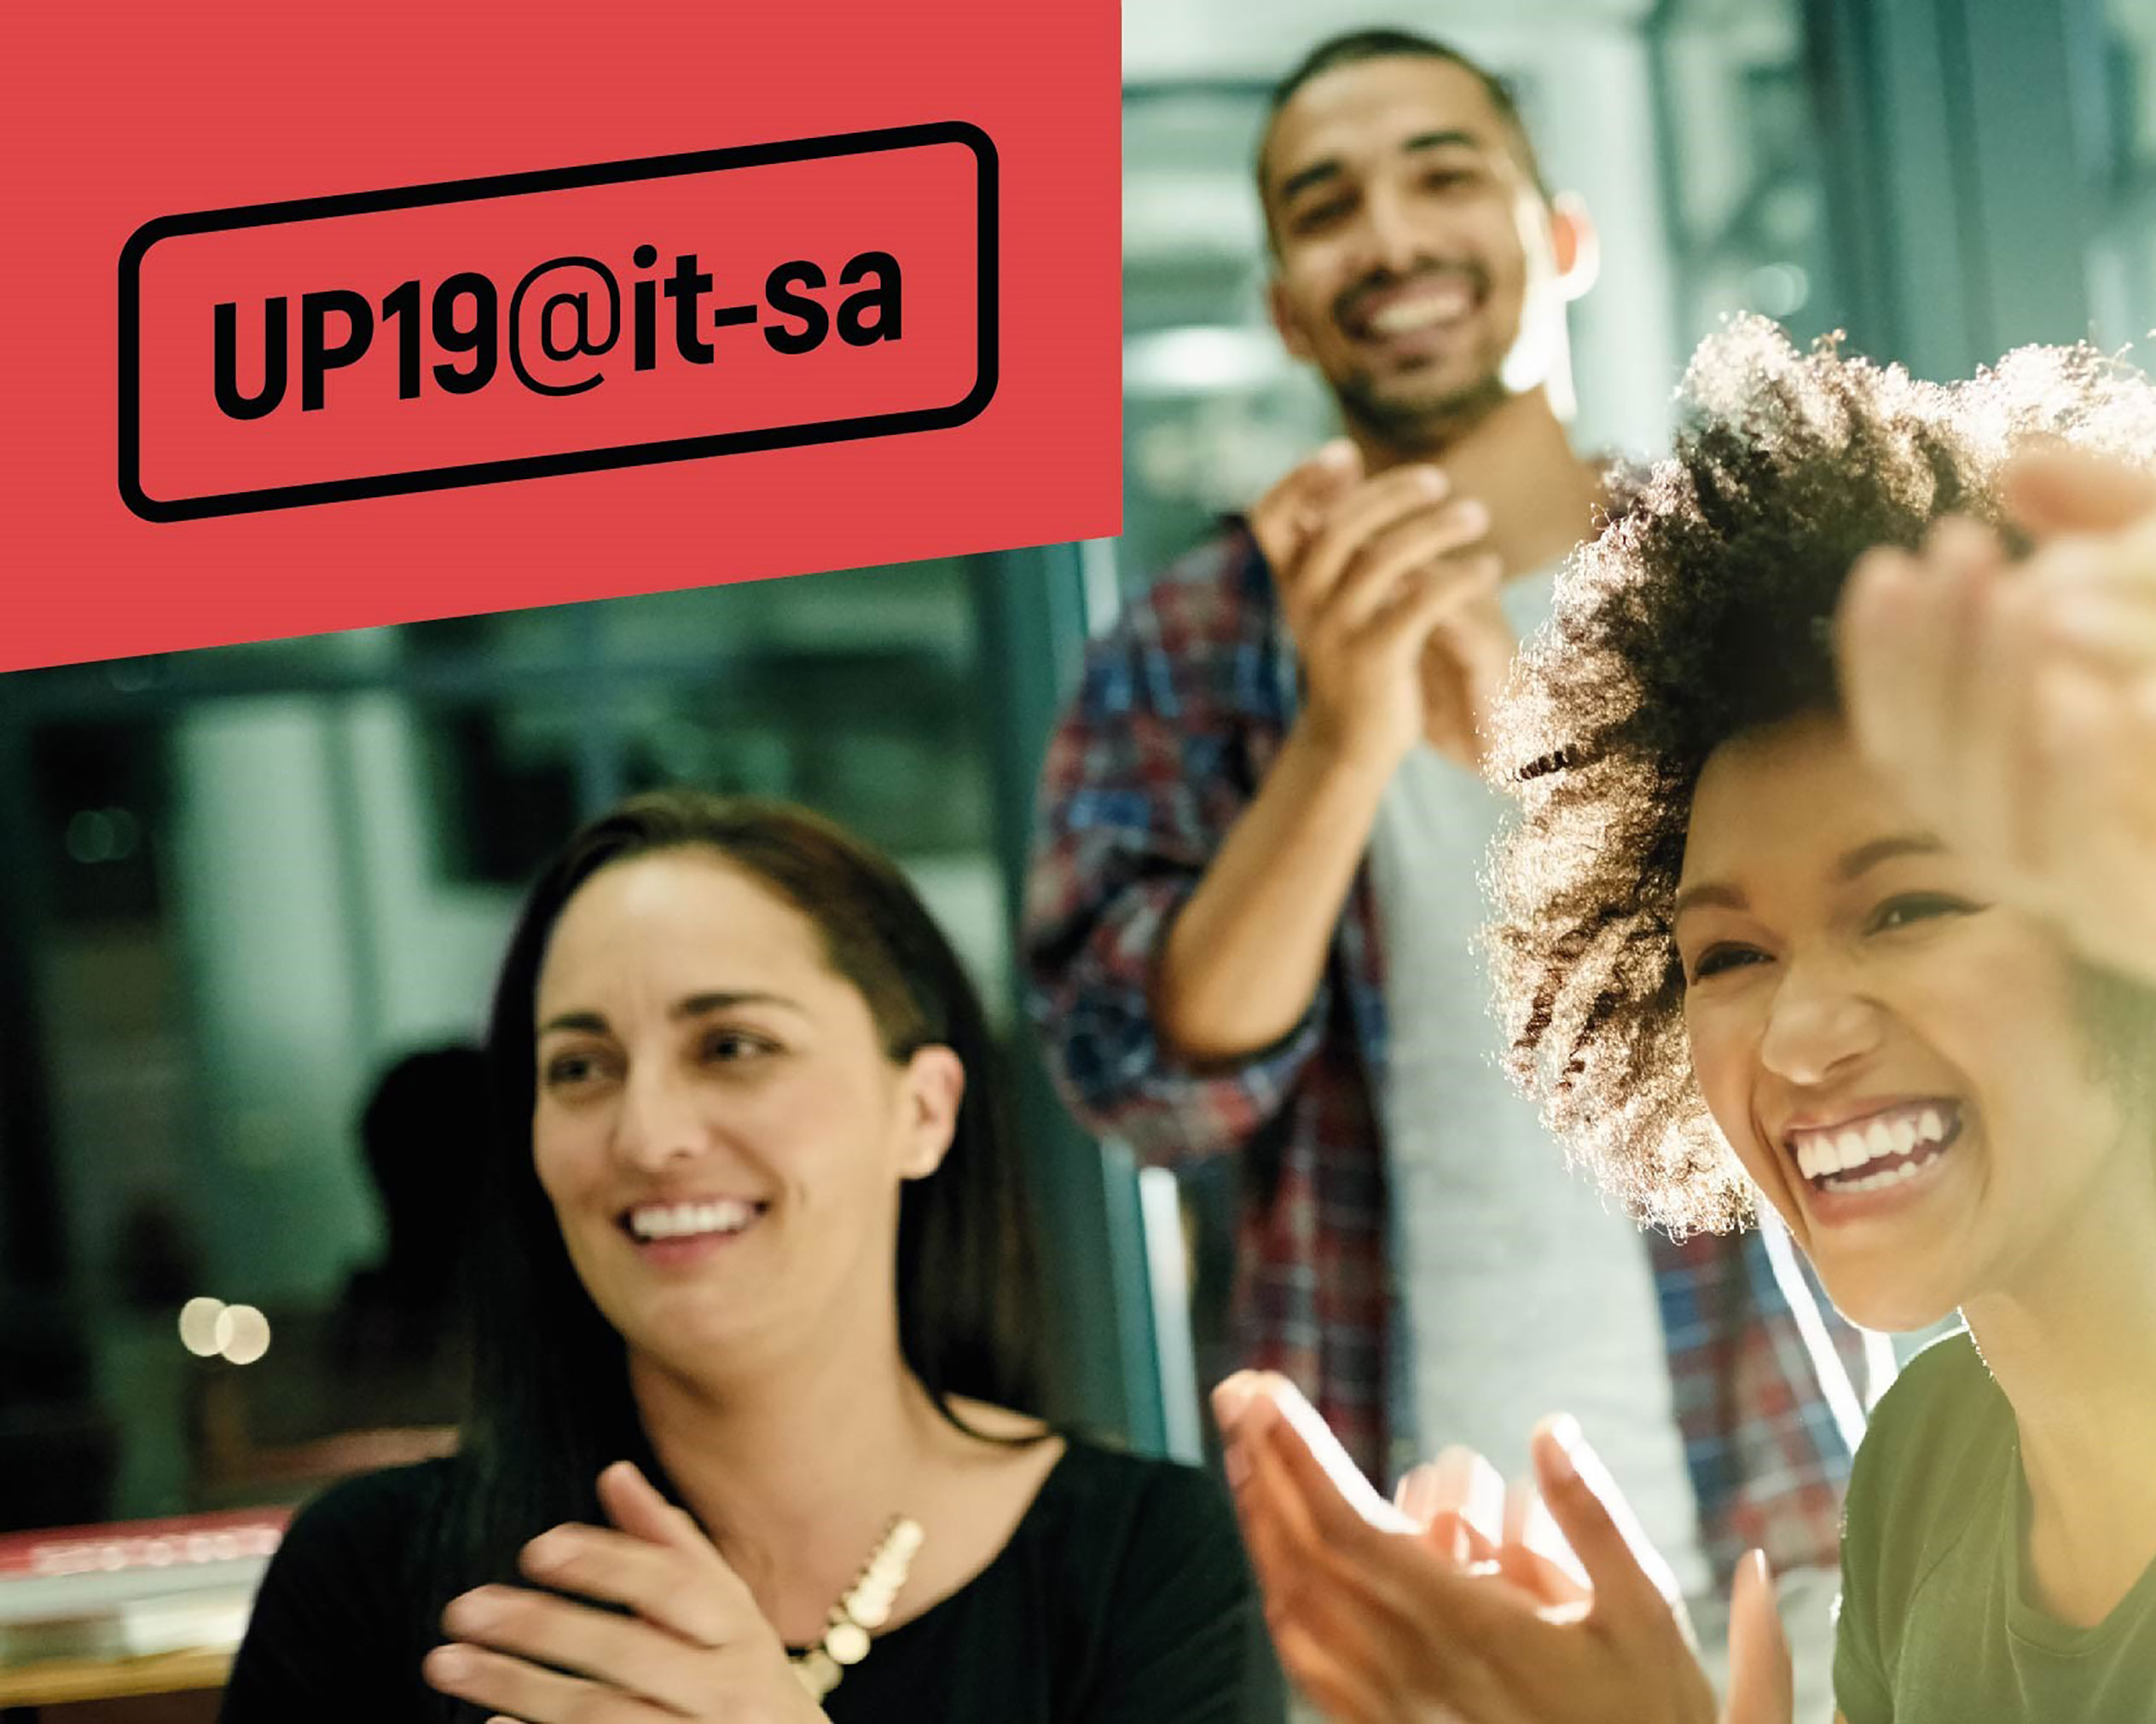 Two young women and a young man are smiling and applauding; in the top left corner you can see the claim UP19@it-sa